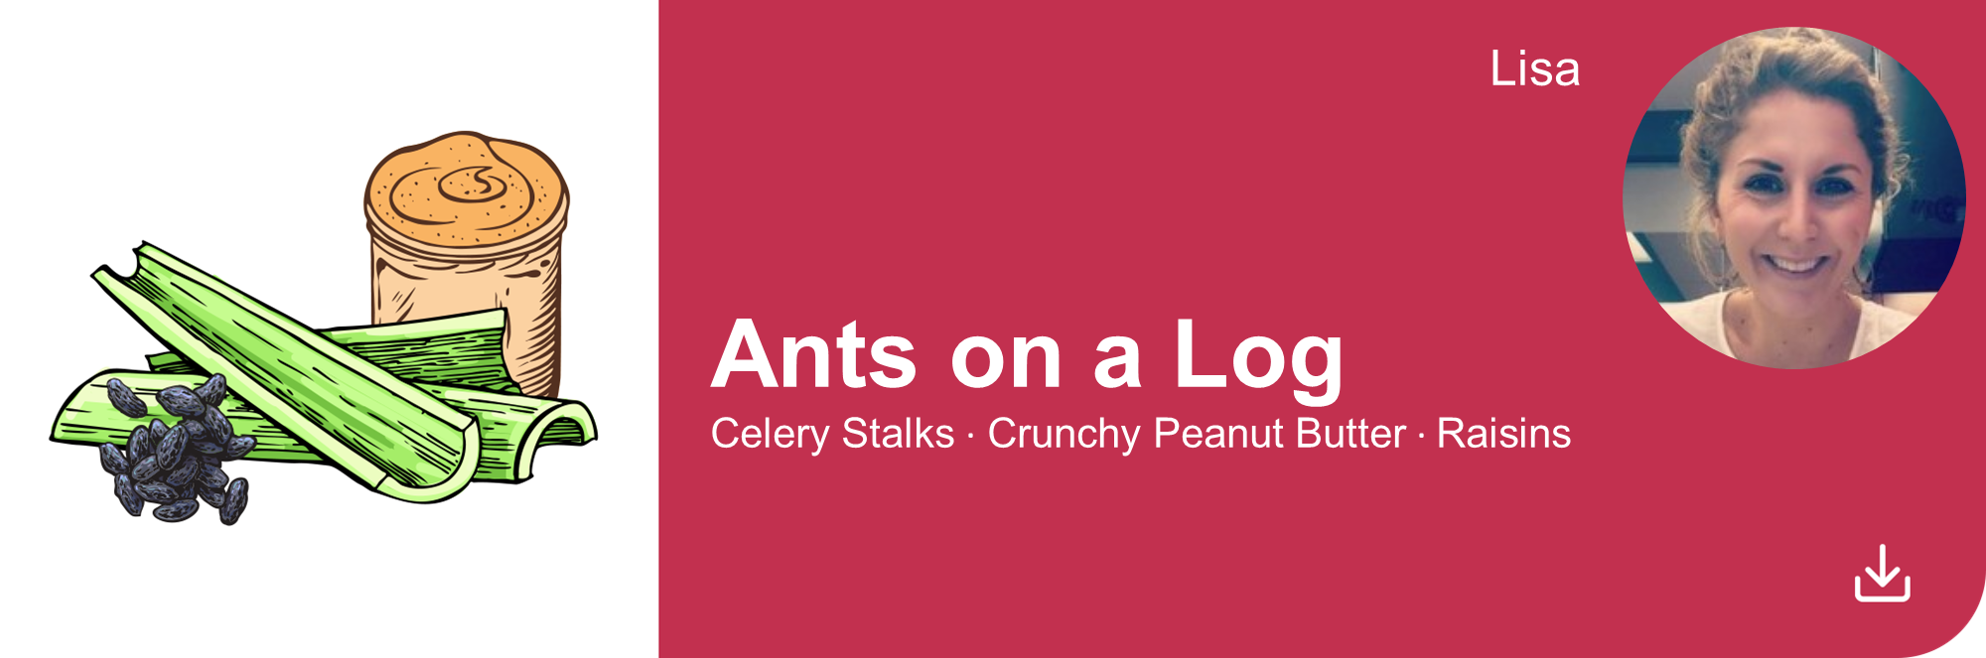 Creative Marketing Concepts_QuarantineAndChill_Comfort Food Edition_Ants on a Log_Lisa